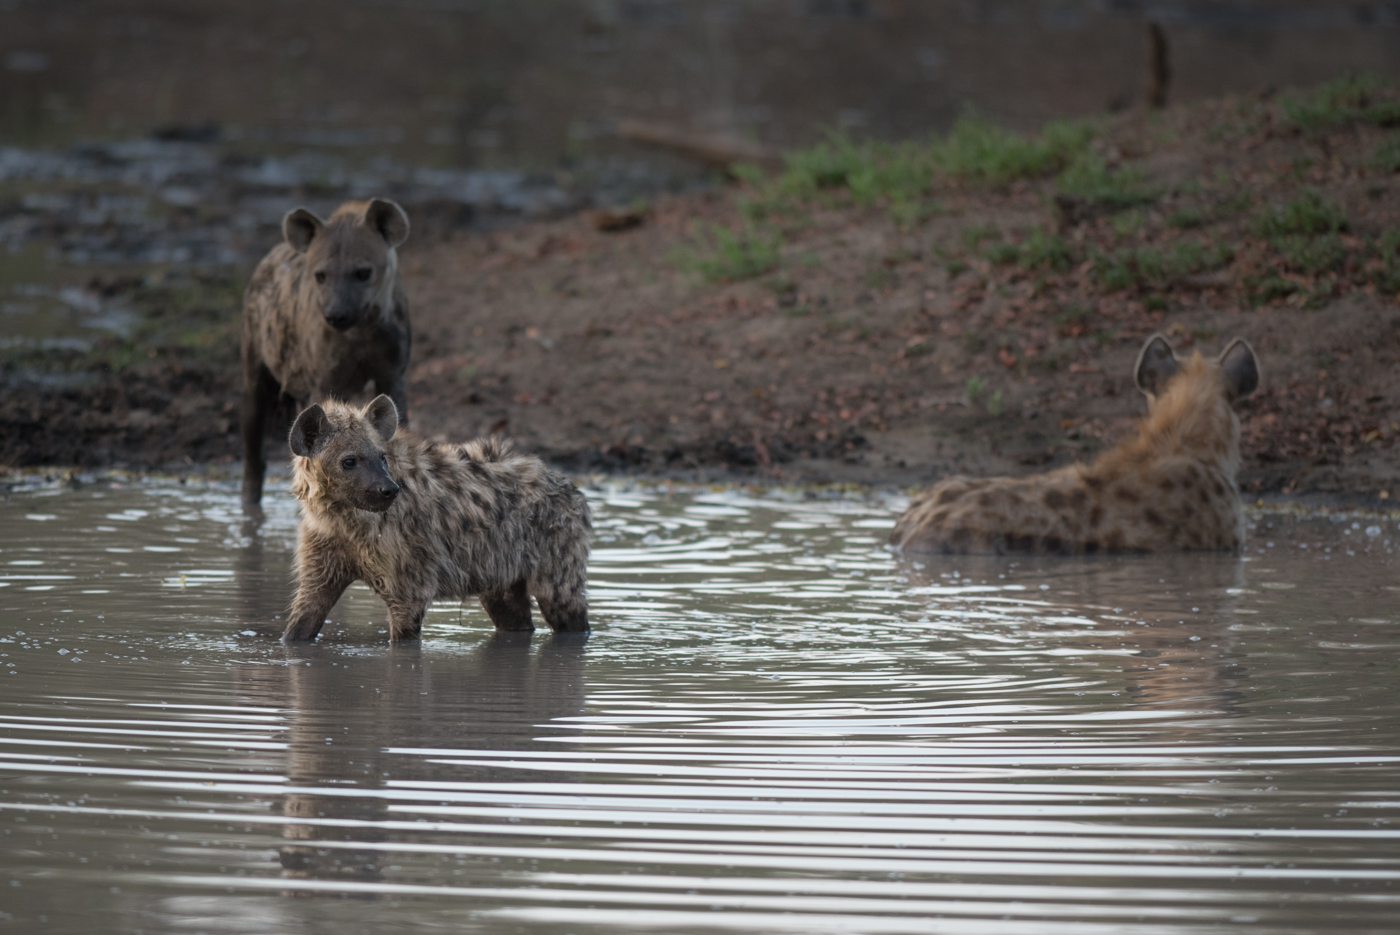 Hyena in the water